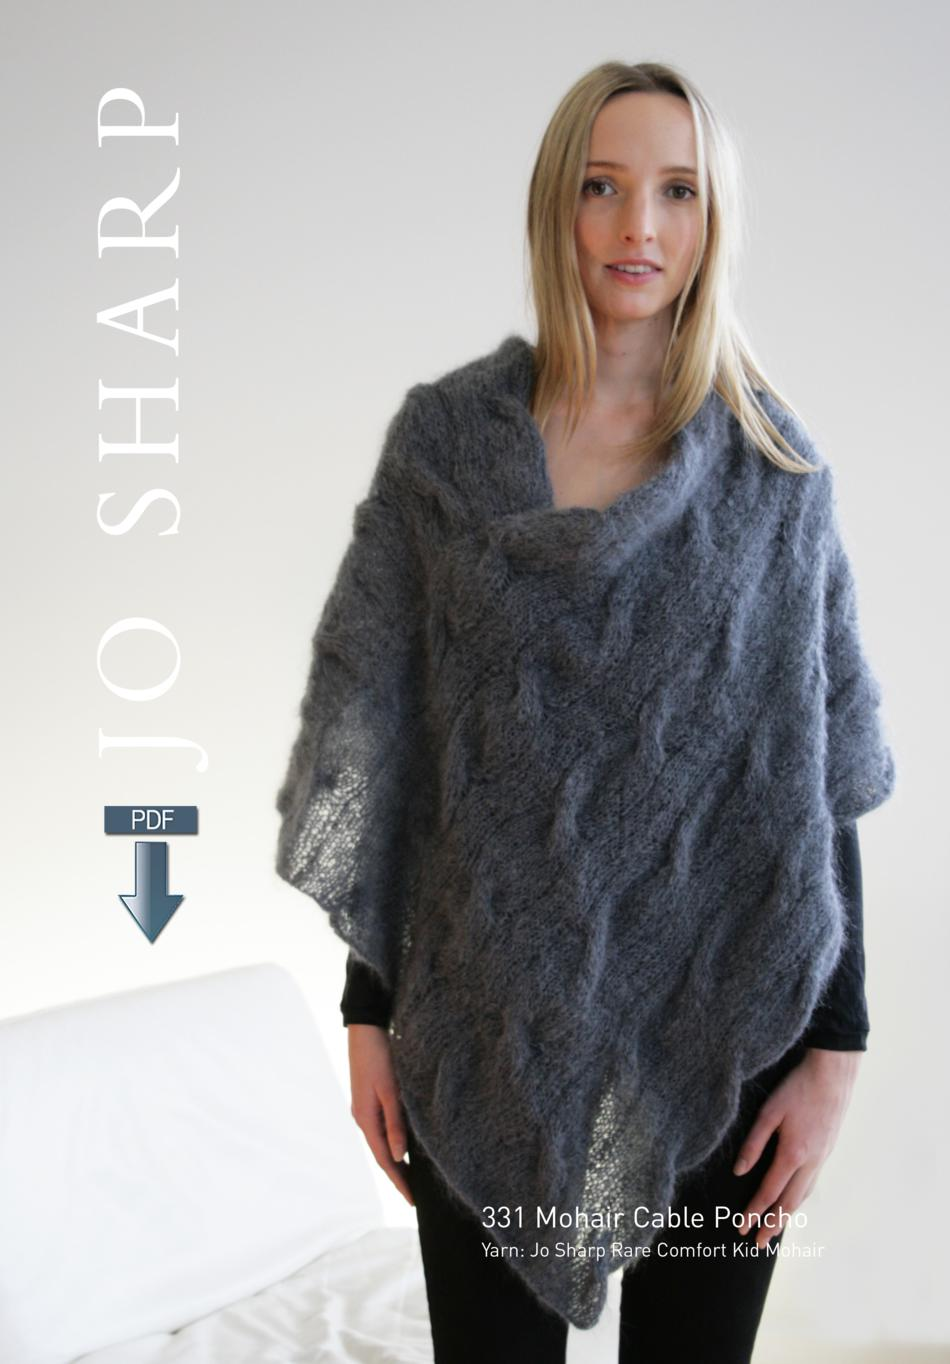 Ponchos and shawls poncho knitting patterns halcyon yarn knitting patterns jo sharp mohair cable poncho pattern pattern download bankloansurffo Image collections